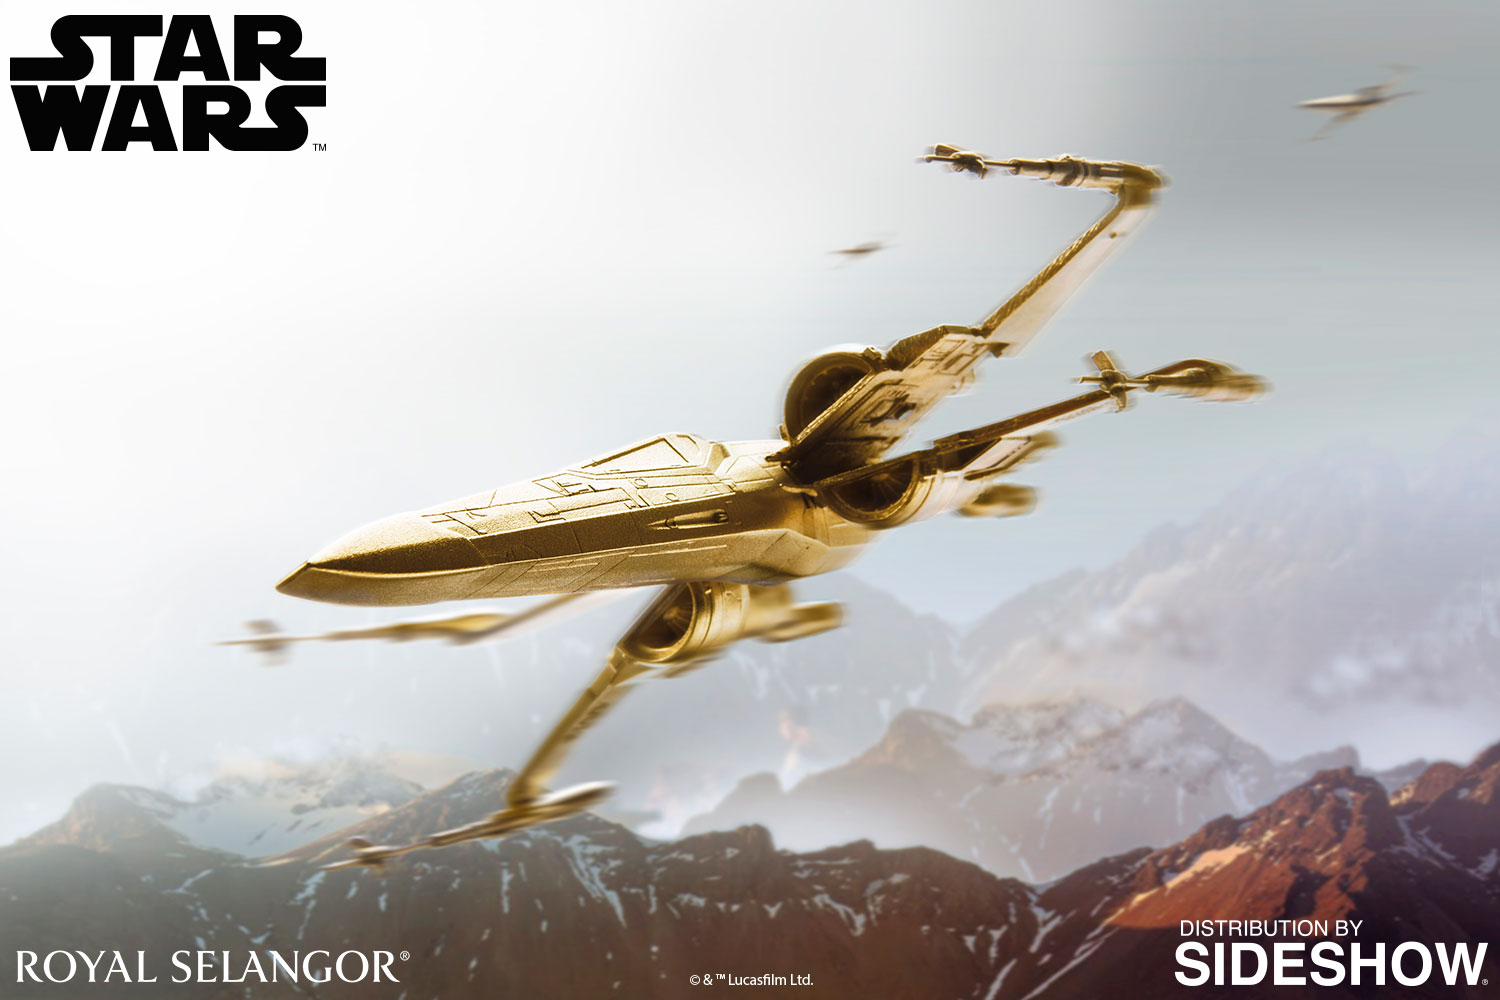 SW-Gilt-X-Wing-Starfighter-scaled-replica-02